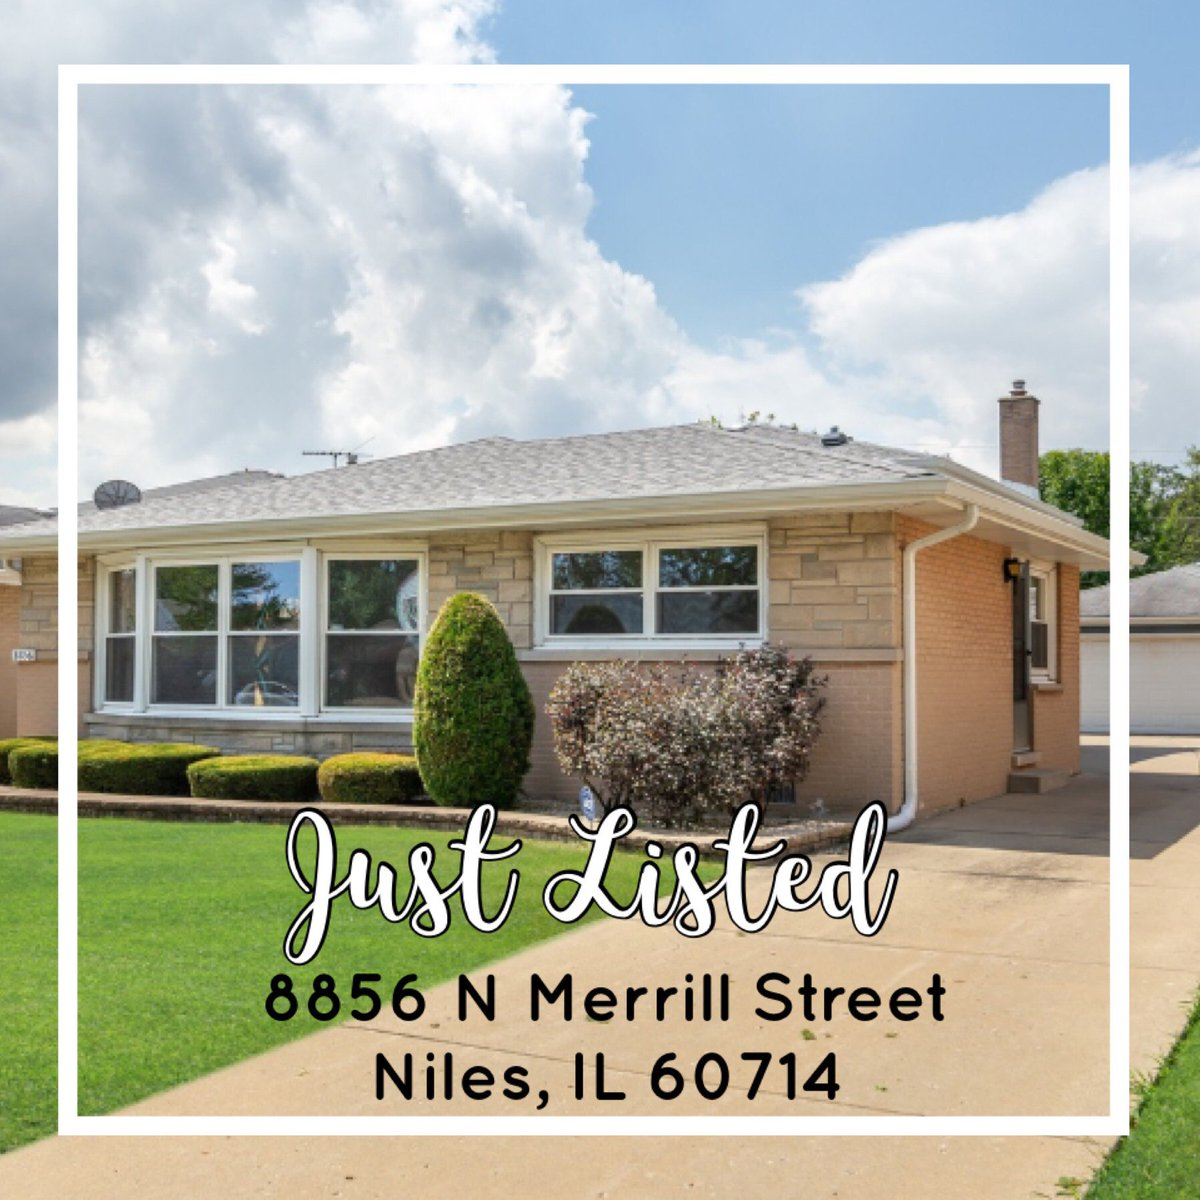 Just listed this gorgeous 4 bedroom, 2 full bath home in Niles! Check it out! #MJHomeTeam #BuyWithMarina #Glenview #RealEstate #Listings #Selling #HomeBuying #HomeSales #HouseSales #HomesForSale #BuyingAHome #HomeSweetHome #Realtor #BHHS #KoenigRubloff